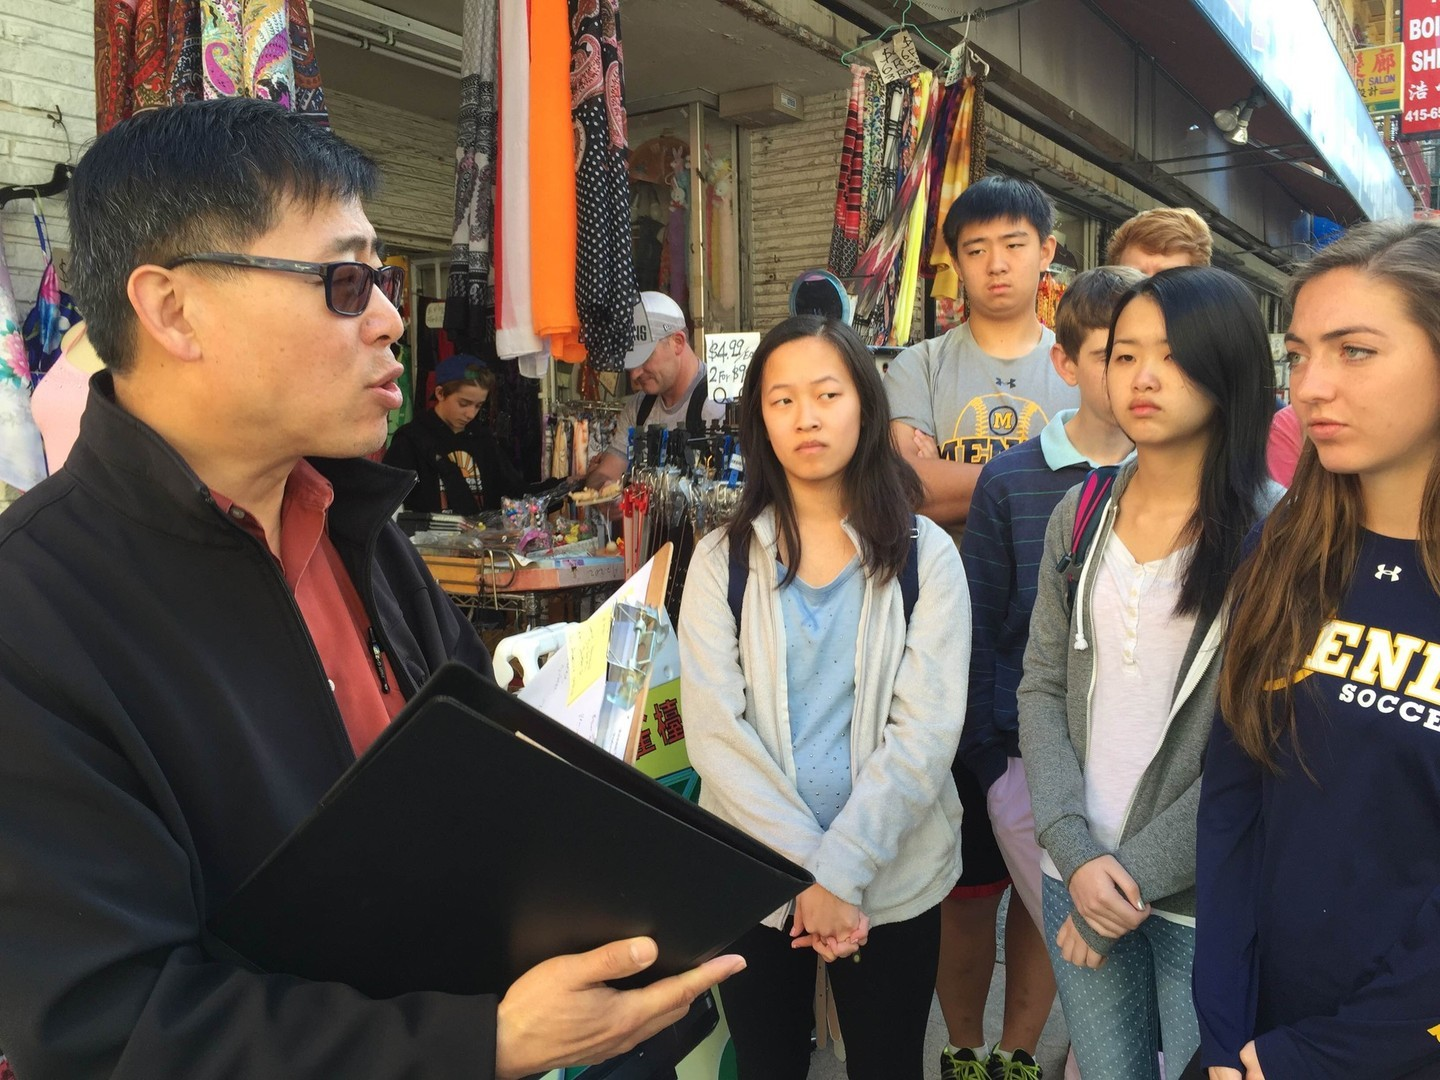 The Chinese Culture Center of San Francisco's director of education and engagement, Darin Ow-Wing (left), gives a tour of Chinatown on Feb. 12, 2015.